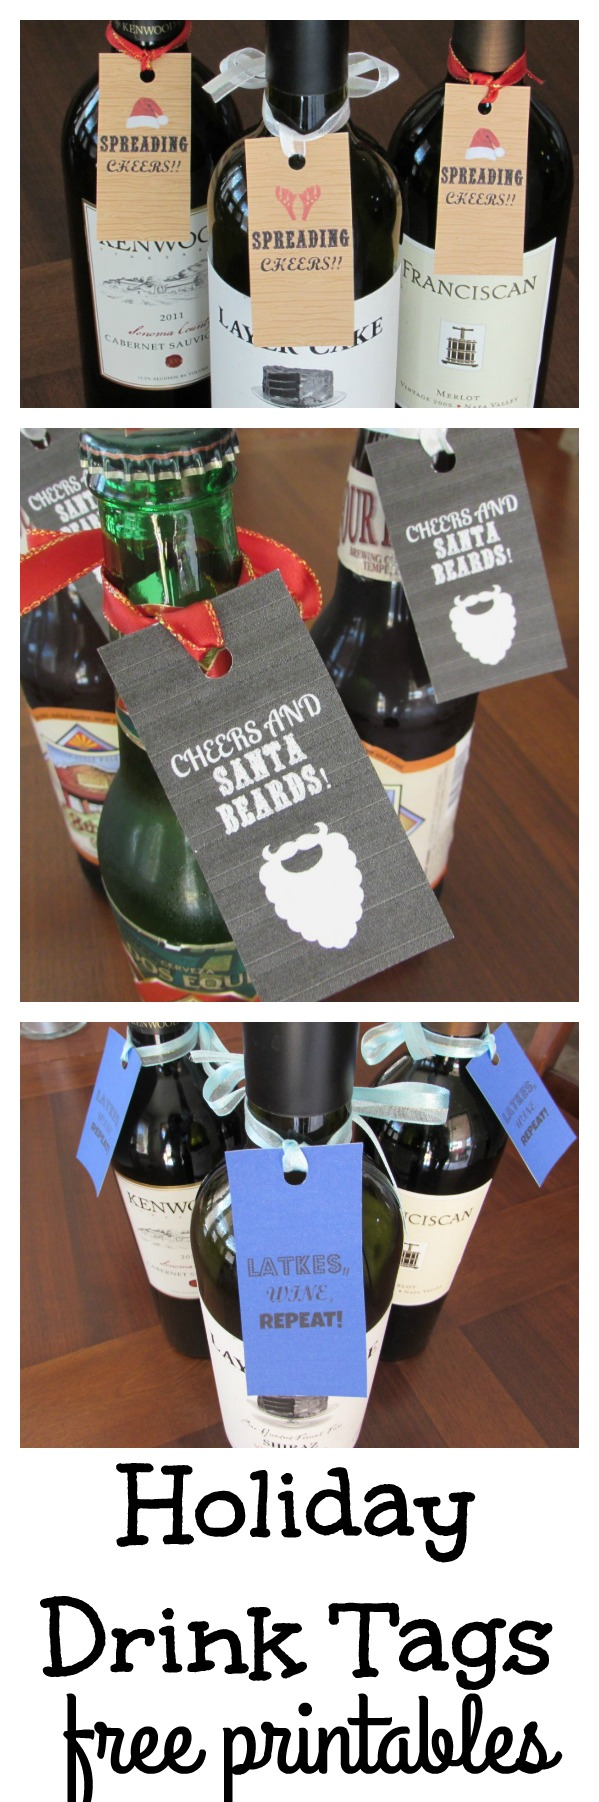 Holiday Drink Tags. Free printables for the holidays!